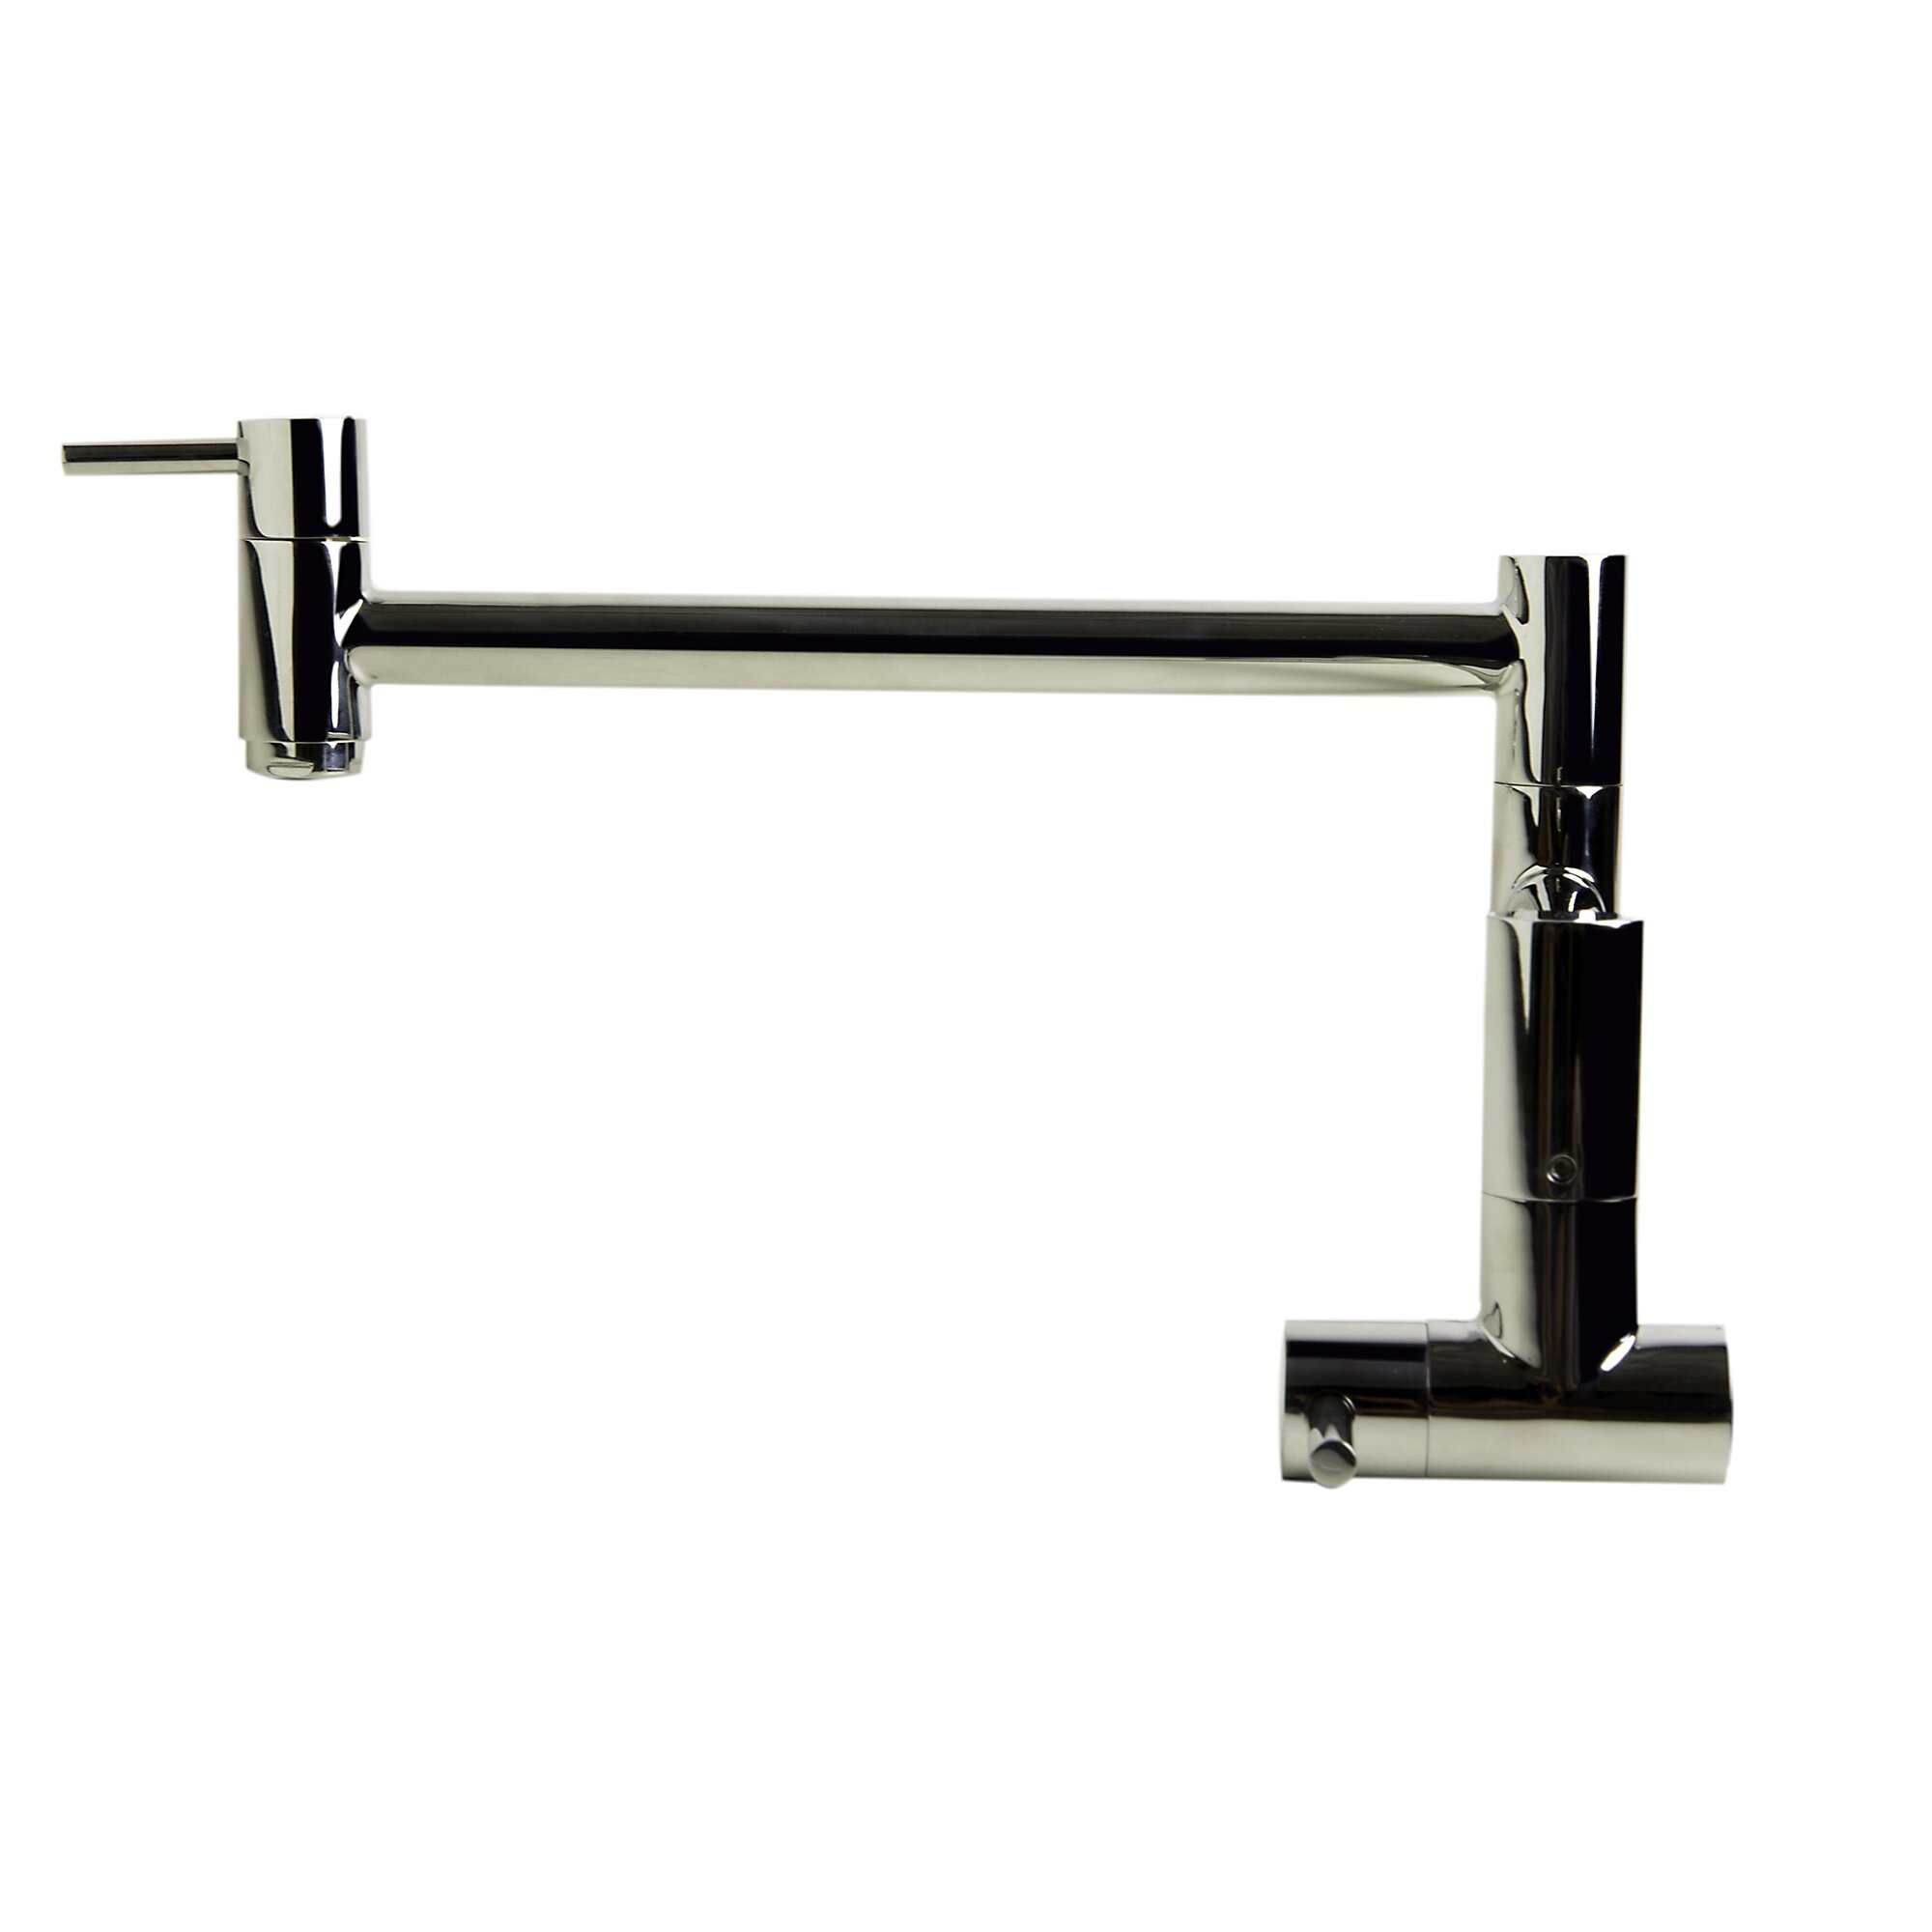 Most Reliable Kitchen Faucets 100 Most Reliable Kitchen Faucets Kitchen Design Brushed